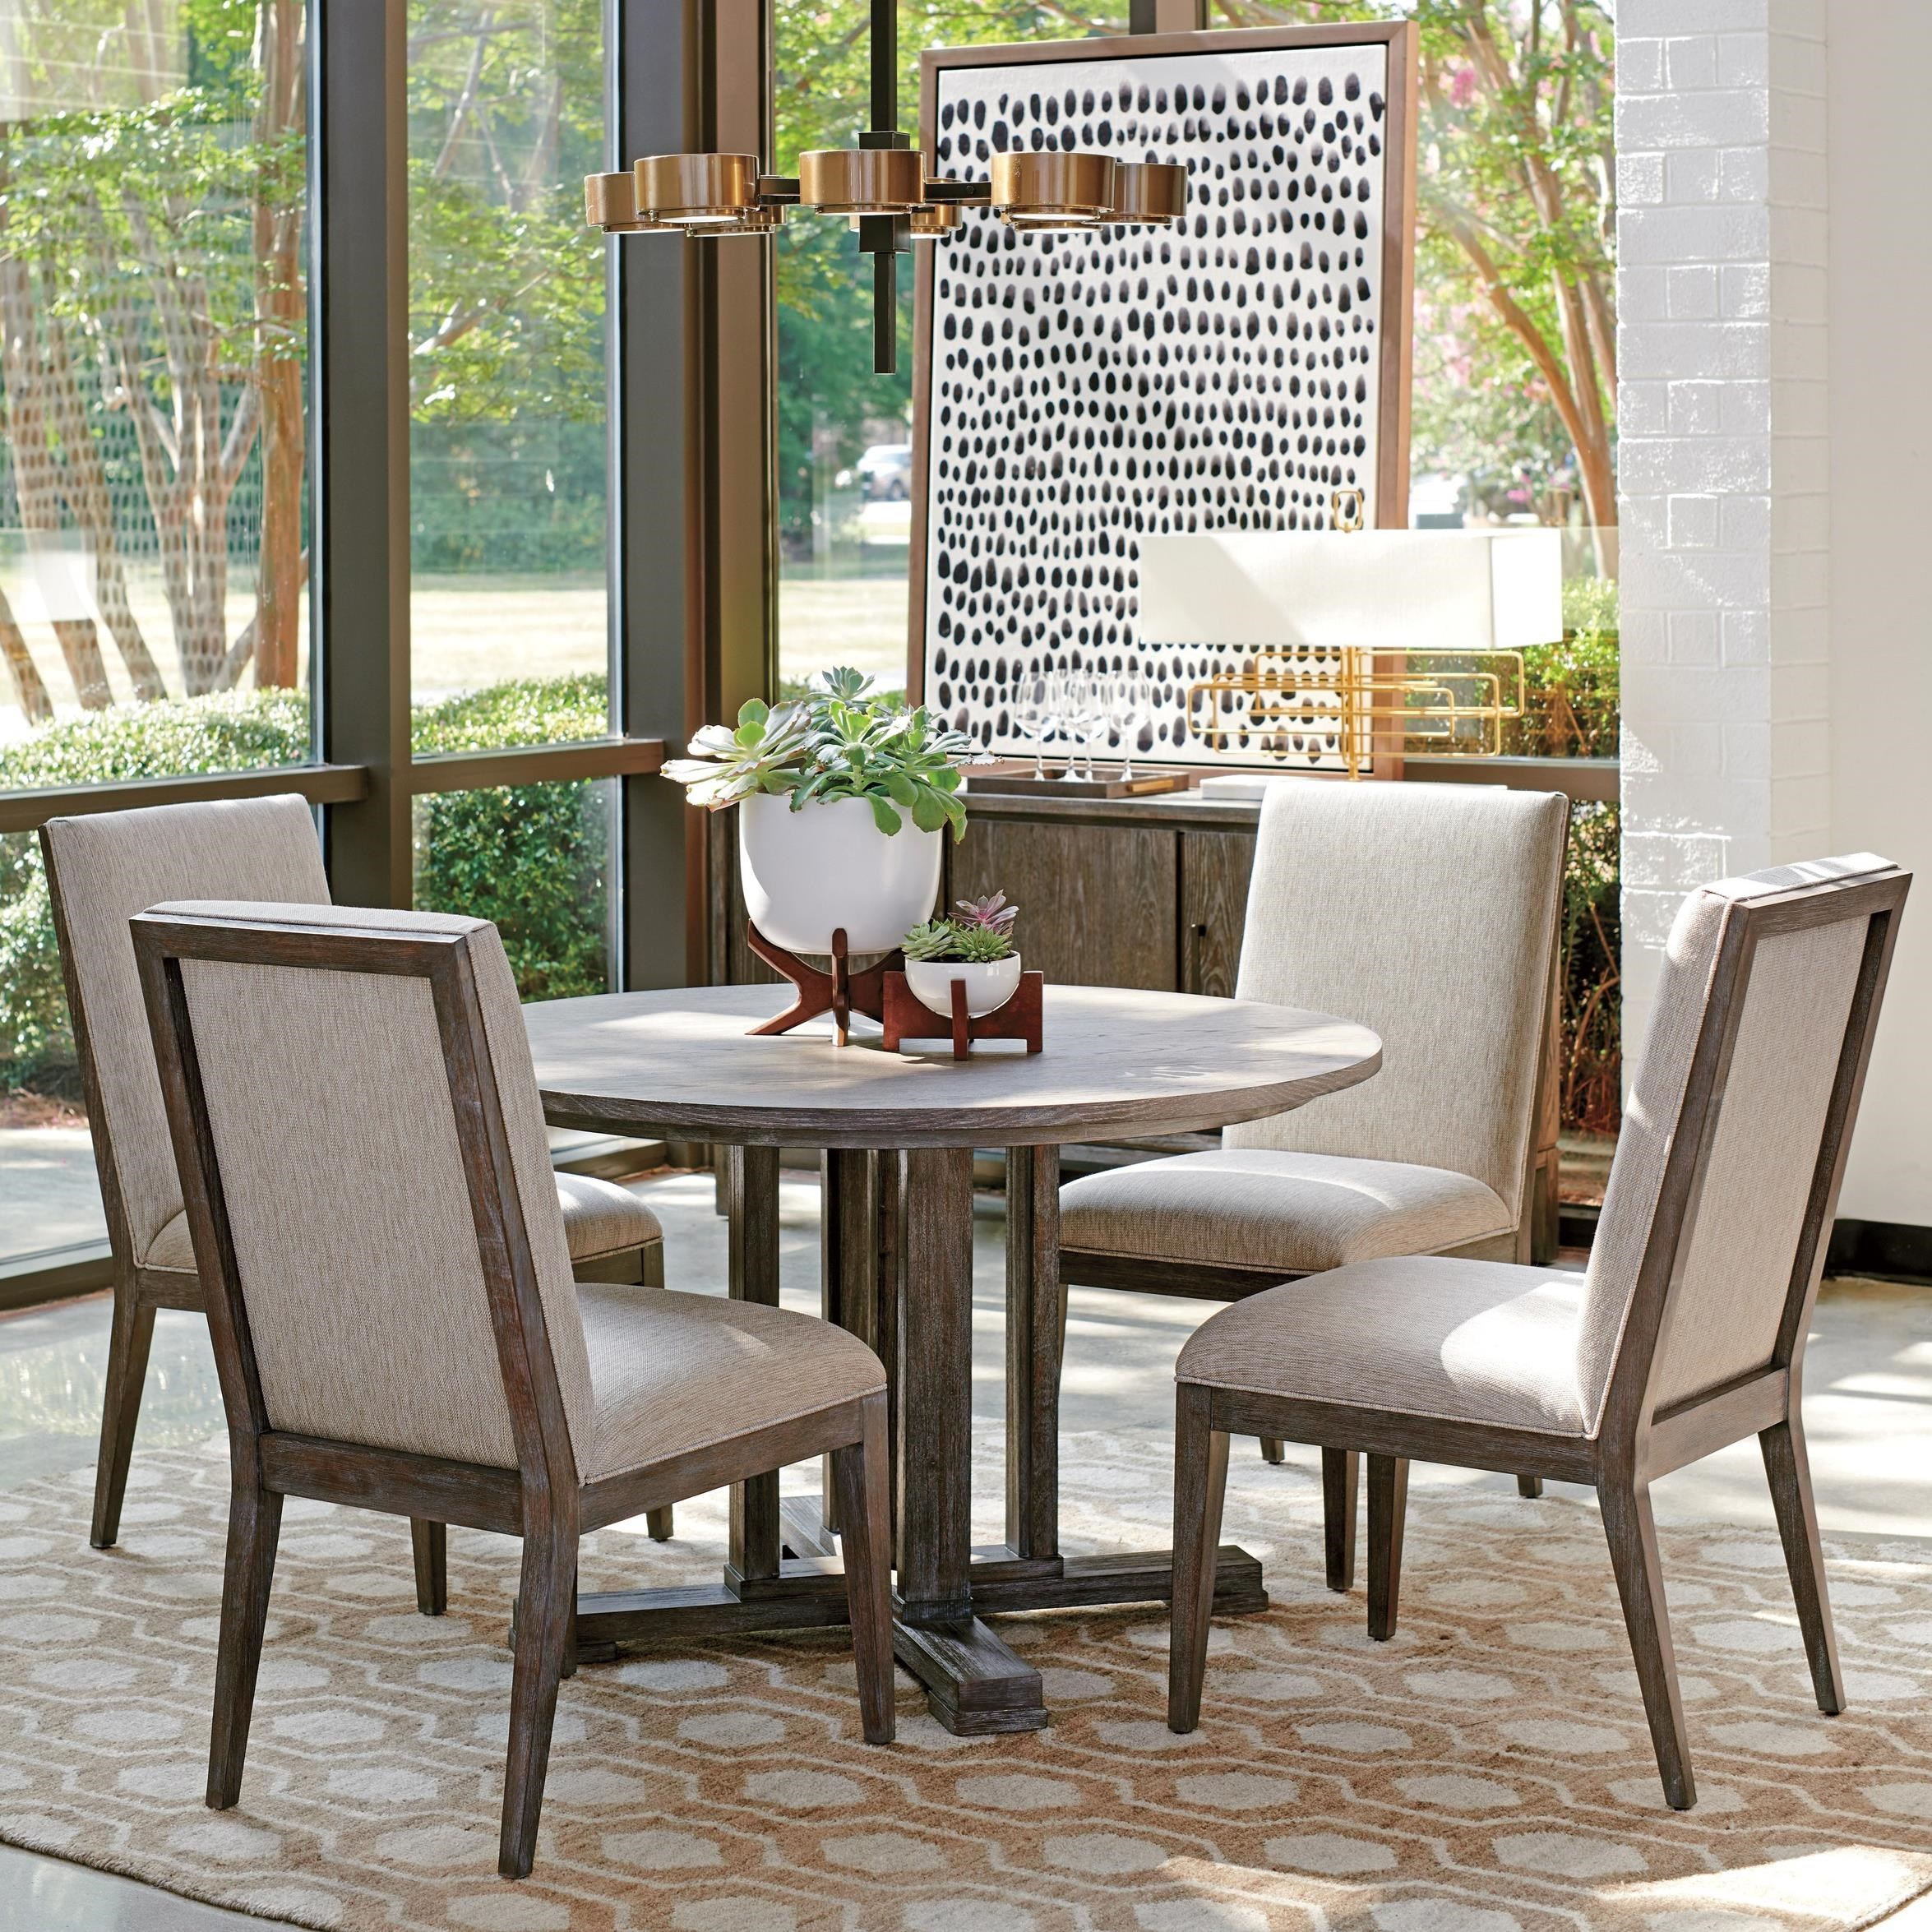 Santana 5 Pc Dining Set by Lexington at Baer's Furniture